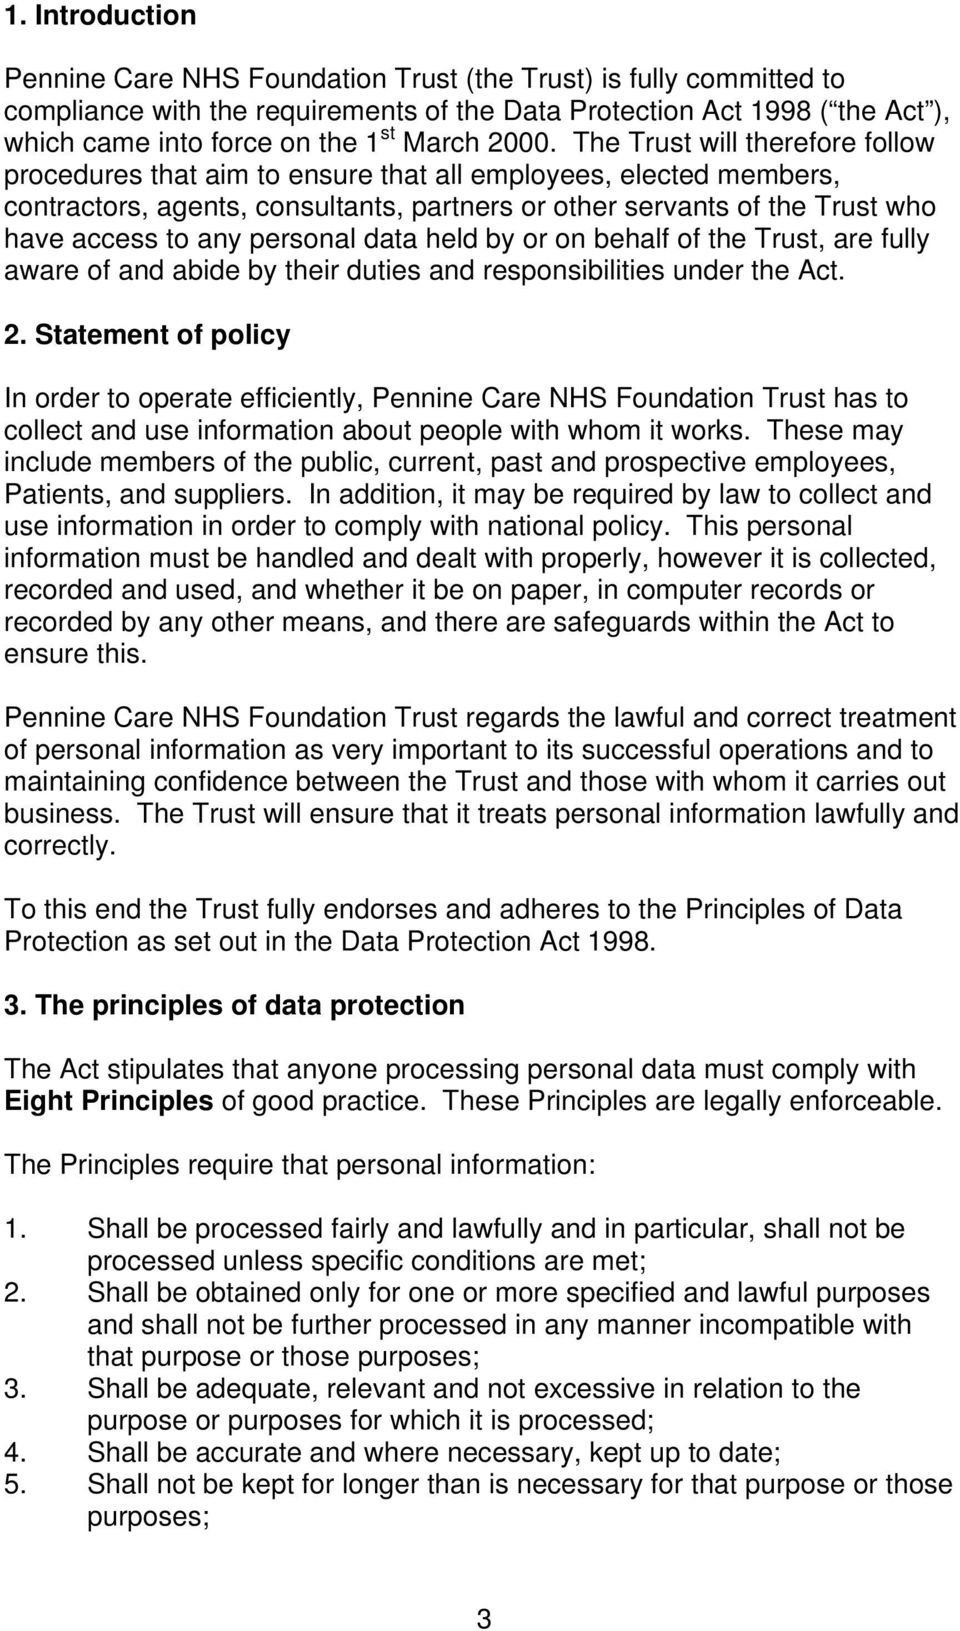 The Trust will therefore follow procedures that aim to ensure that all employees, elected members, contractors, agents, consultants, partners or other servants of the Trust who have access to any